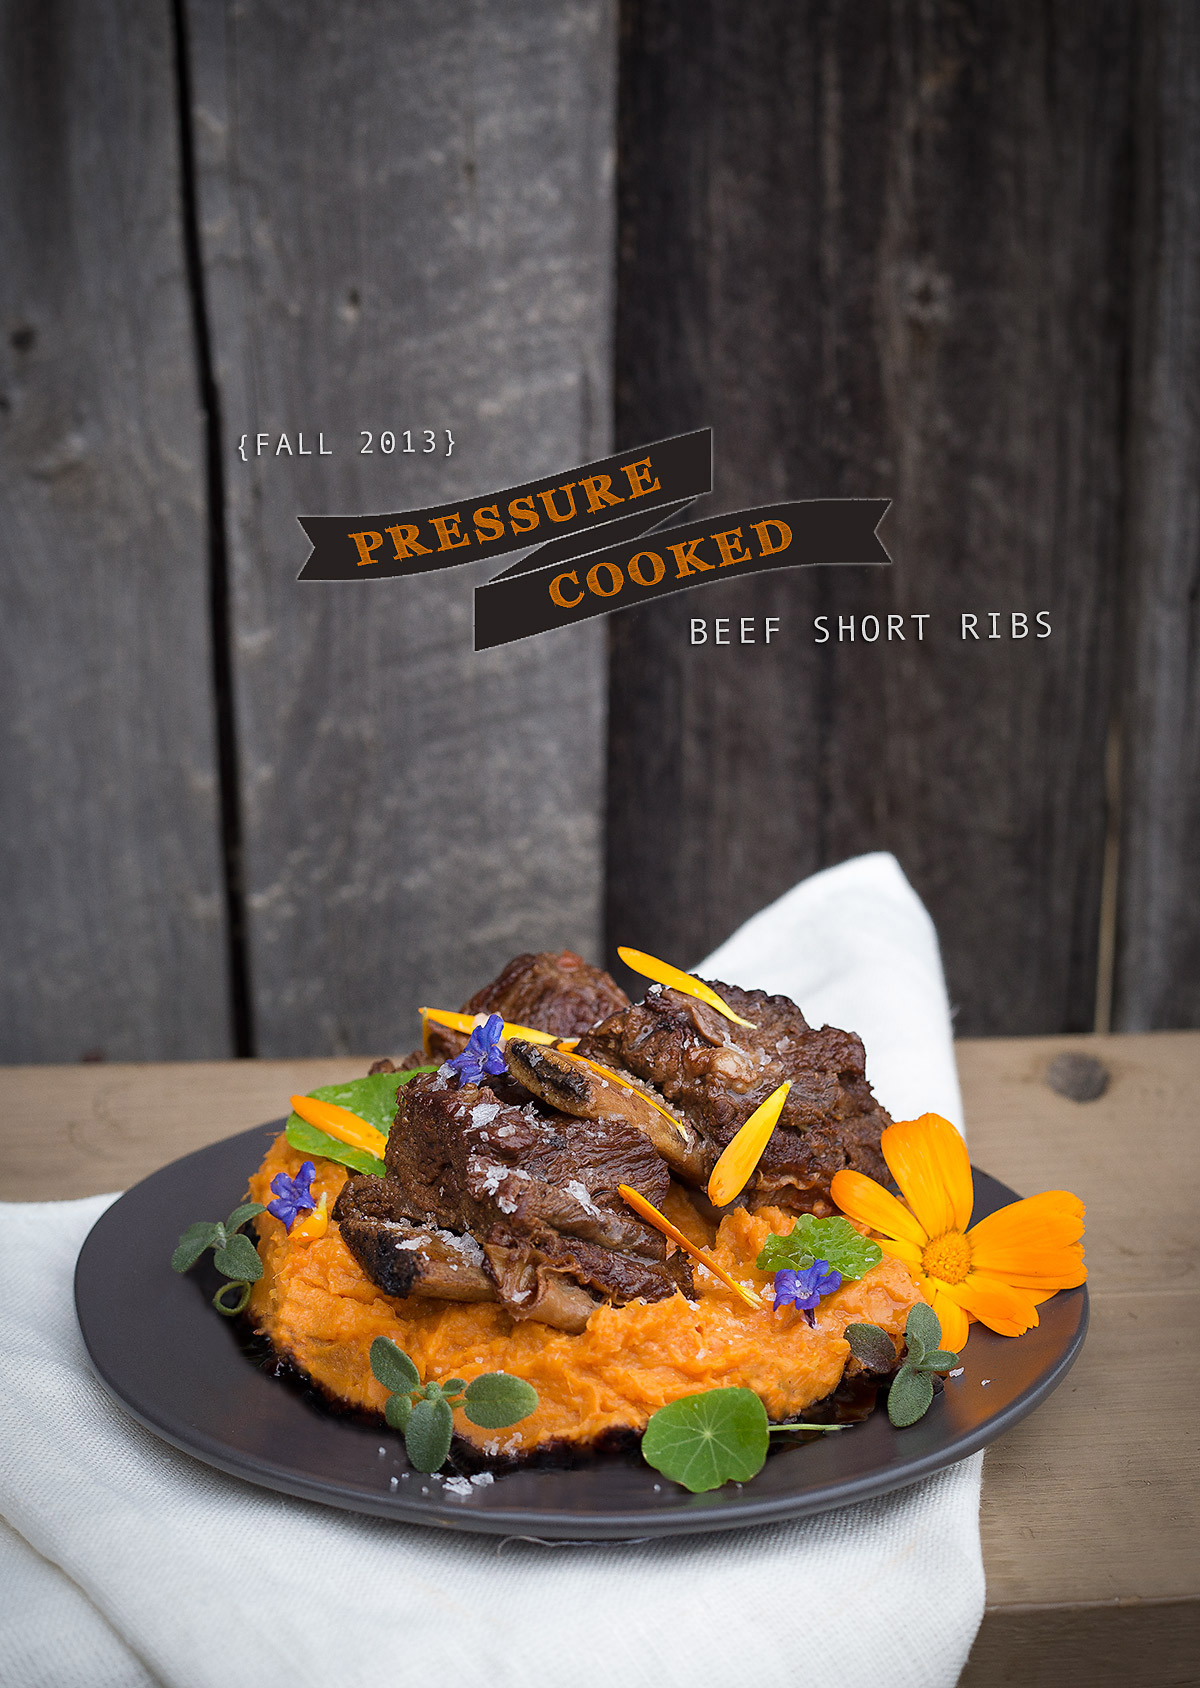 Pressure Cooked Beef Short Ribs